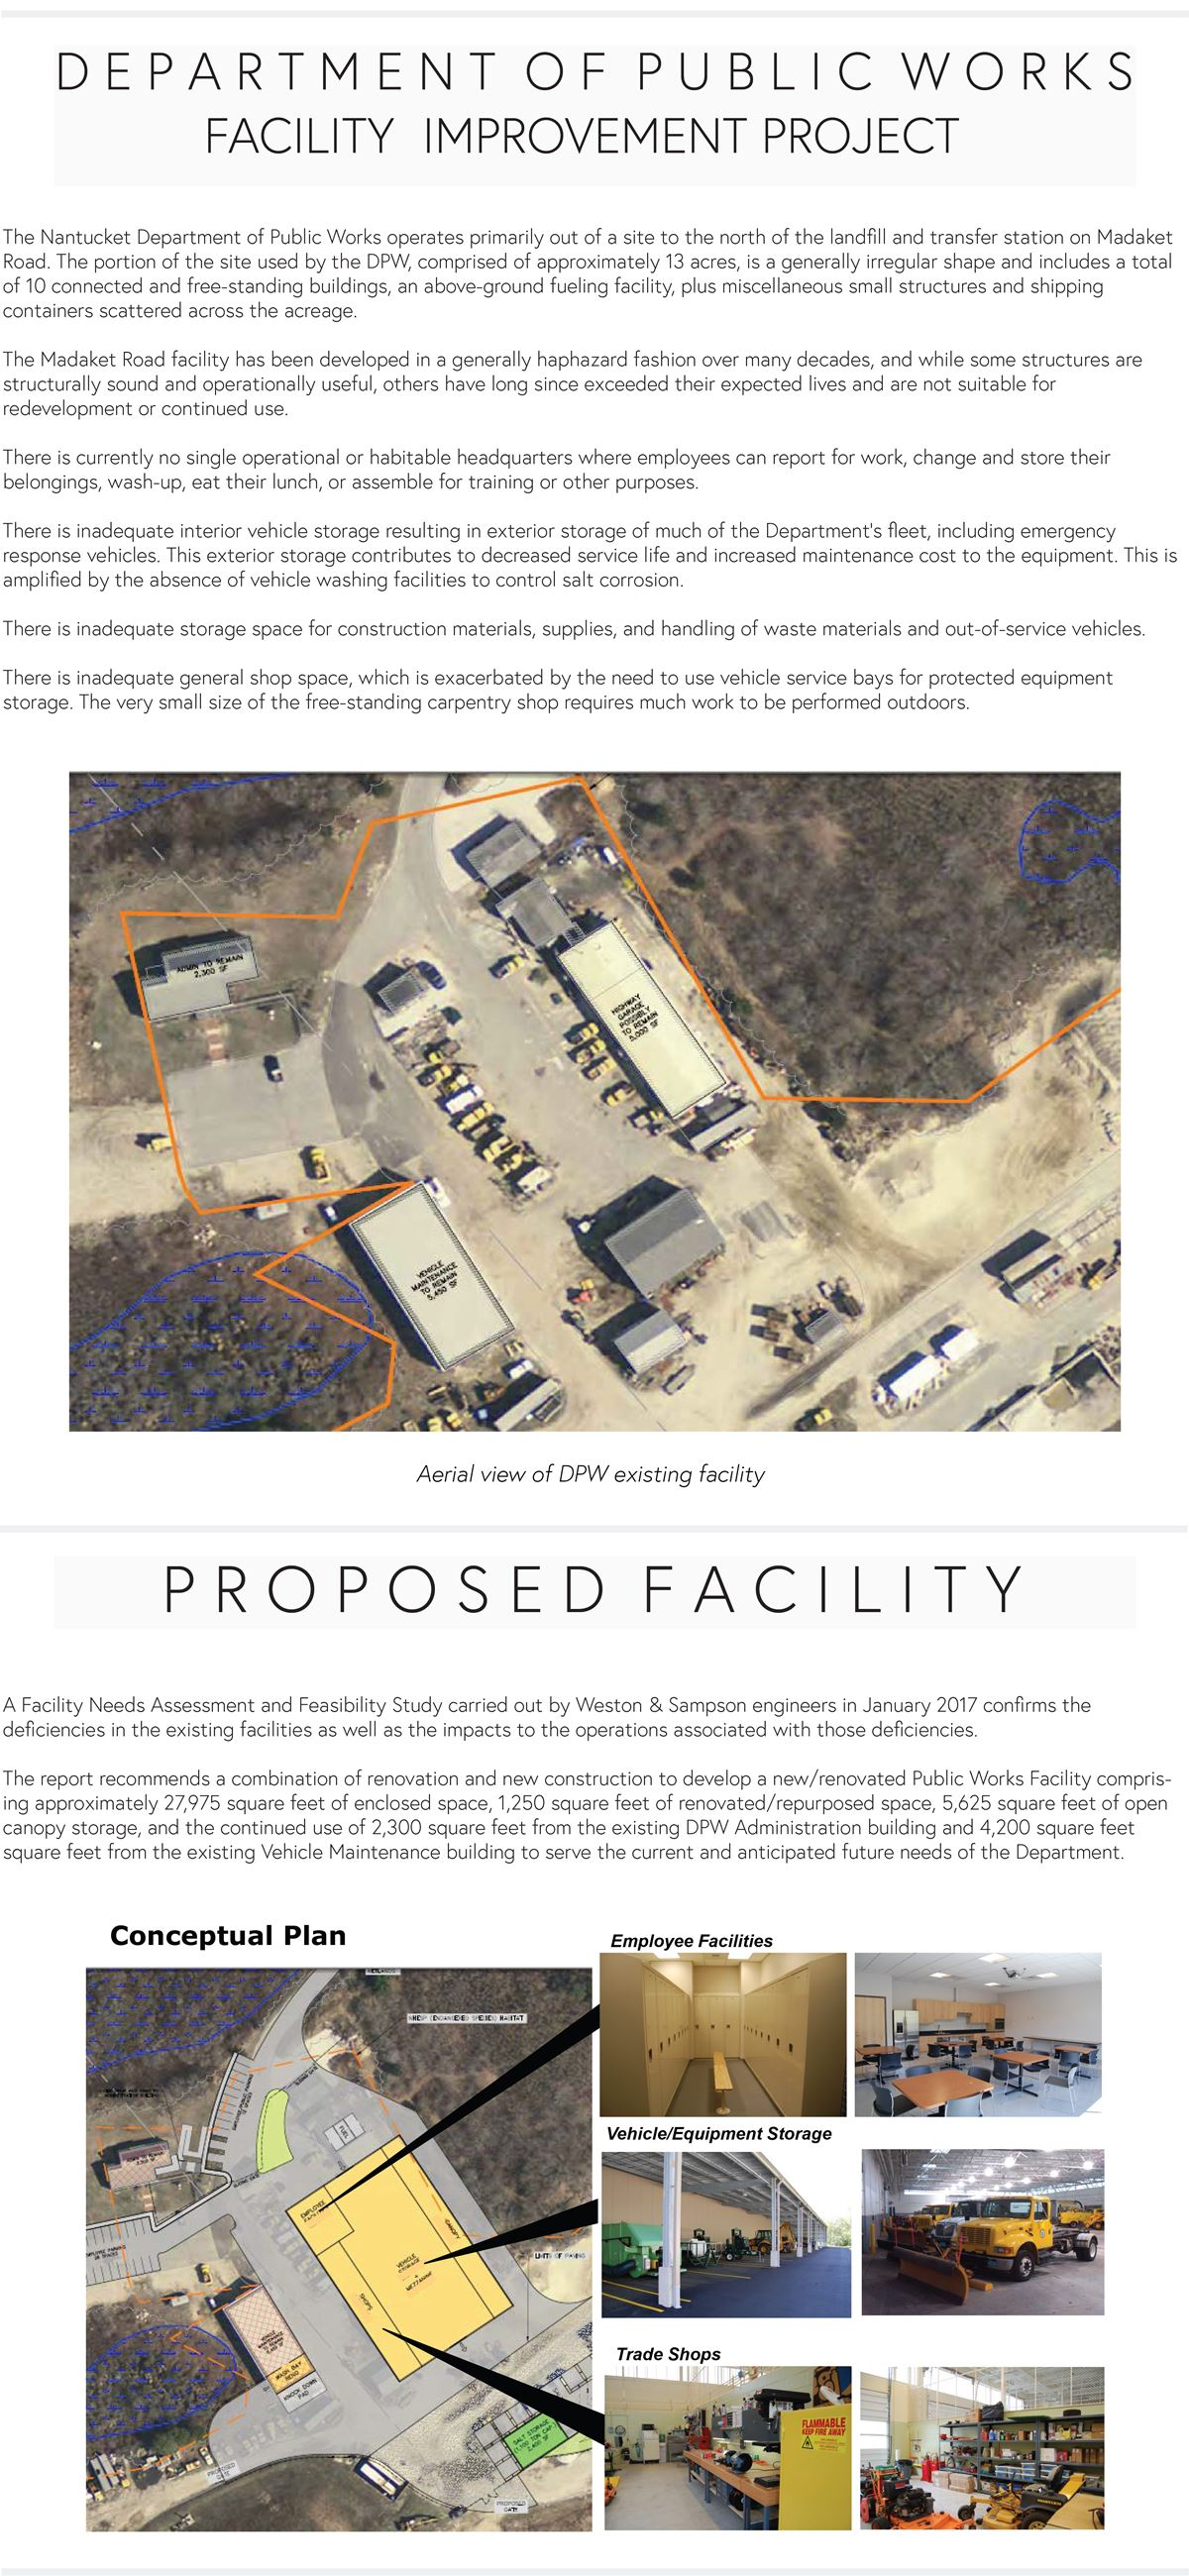 DPW Facility Improvement Project